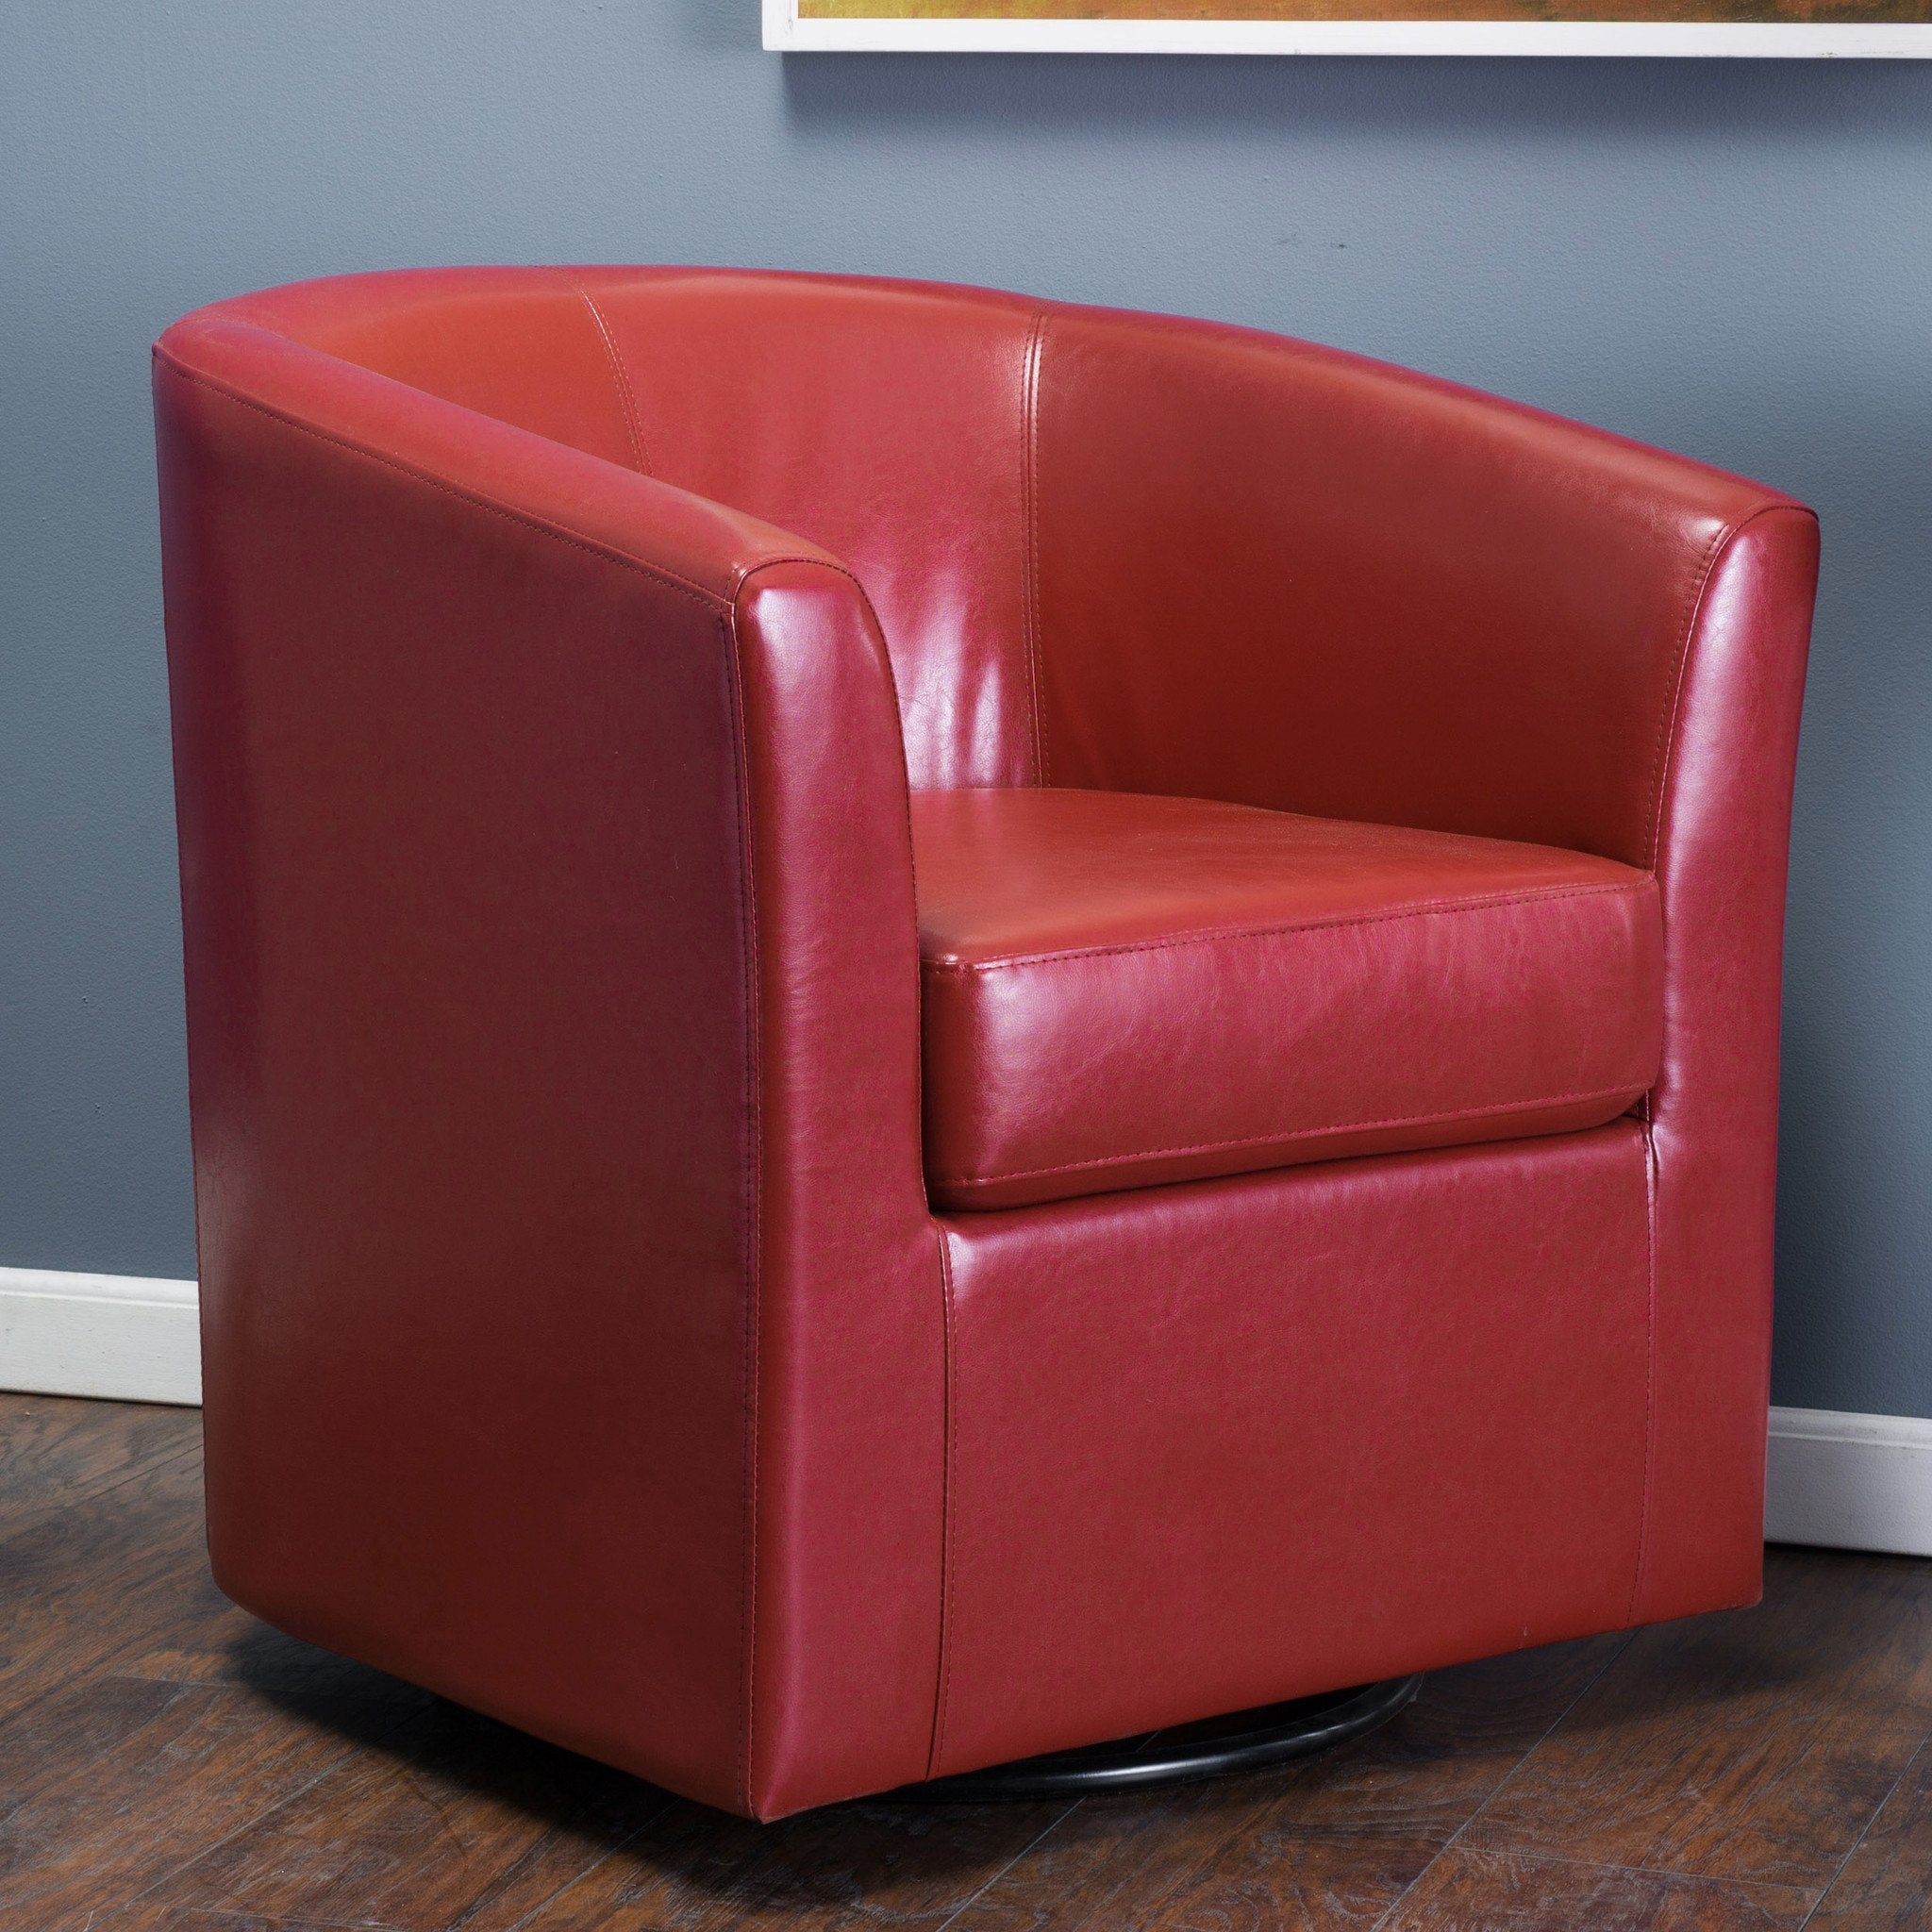 Corley Modern Upholstered Faux Leather Swivel Barrel Club Chair Gdfstudio